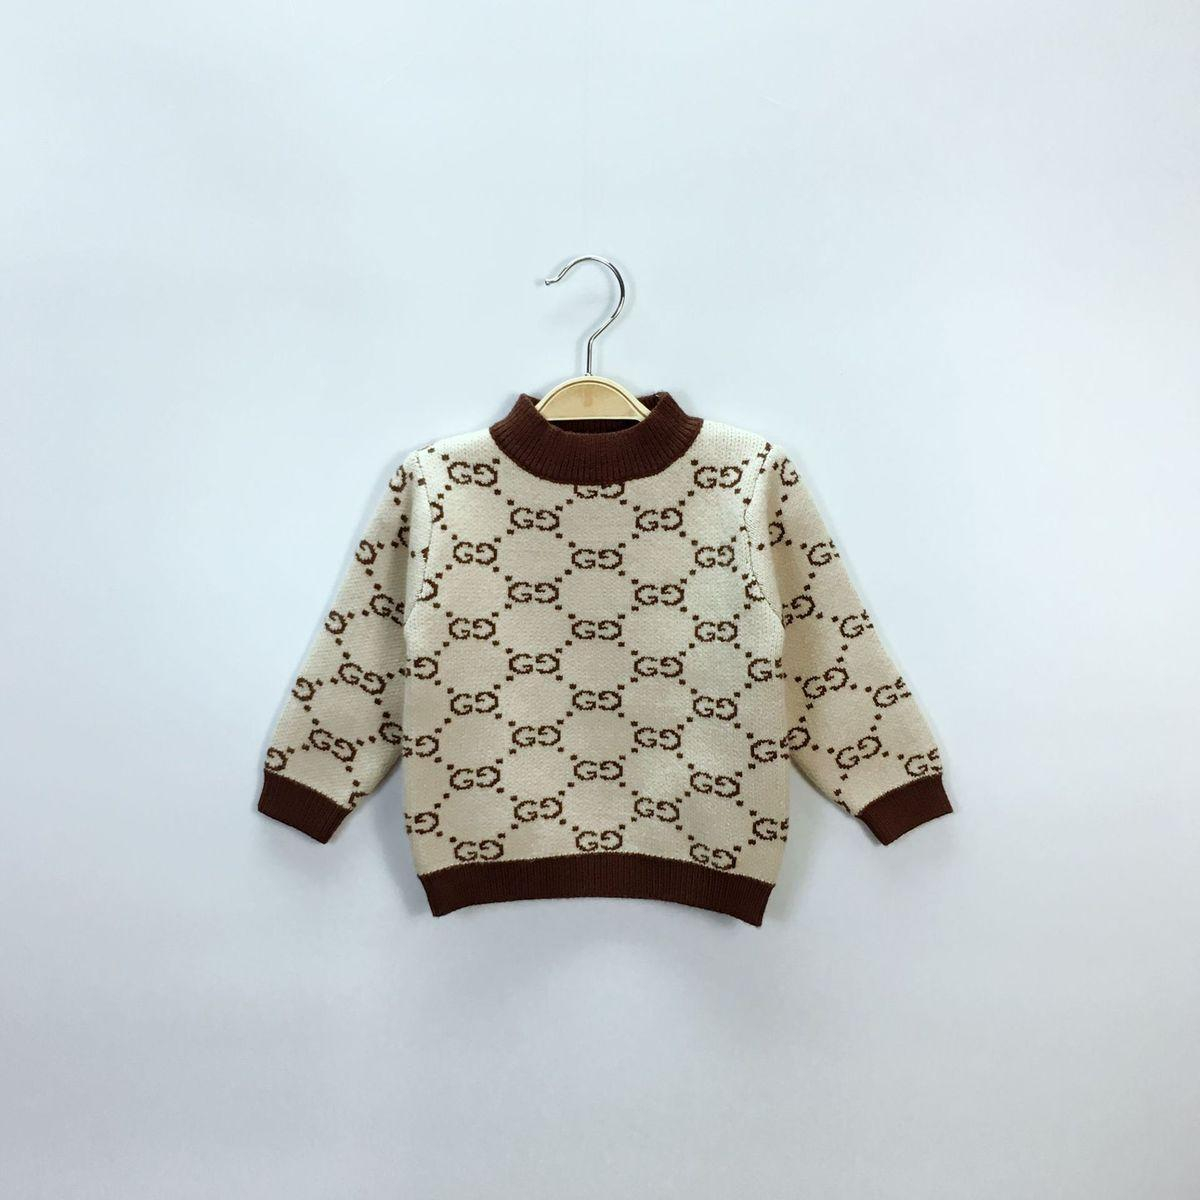 Knitted Childrens Sweaters Free Patterns Girl Sweater Korean Edition Autumn Jackets And Coats Winter For Double Letter Children Boys Knitting